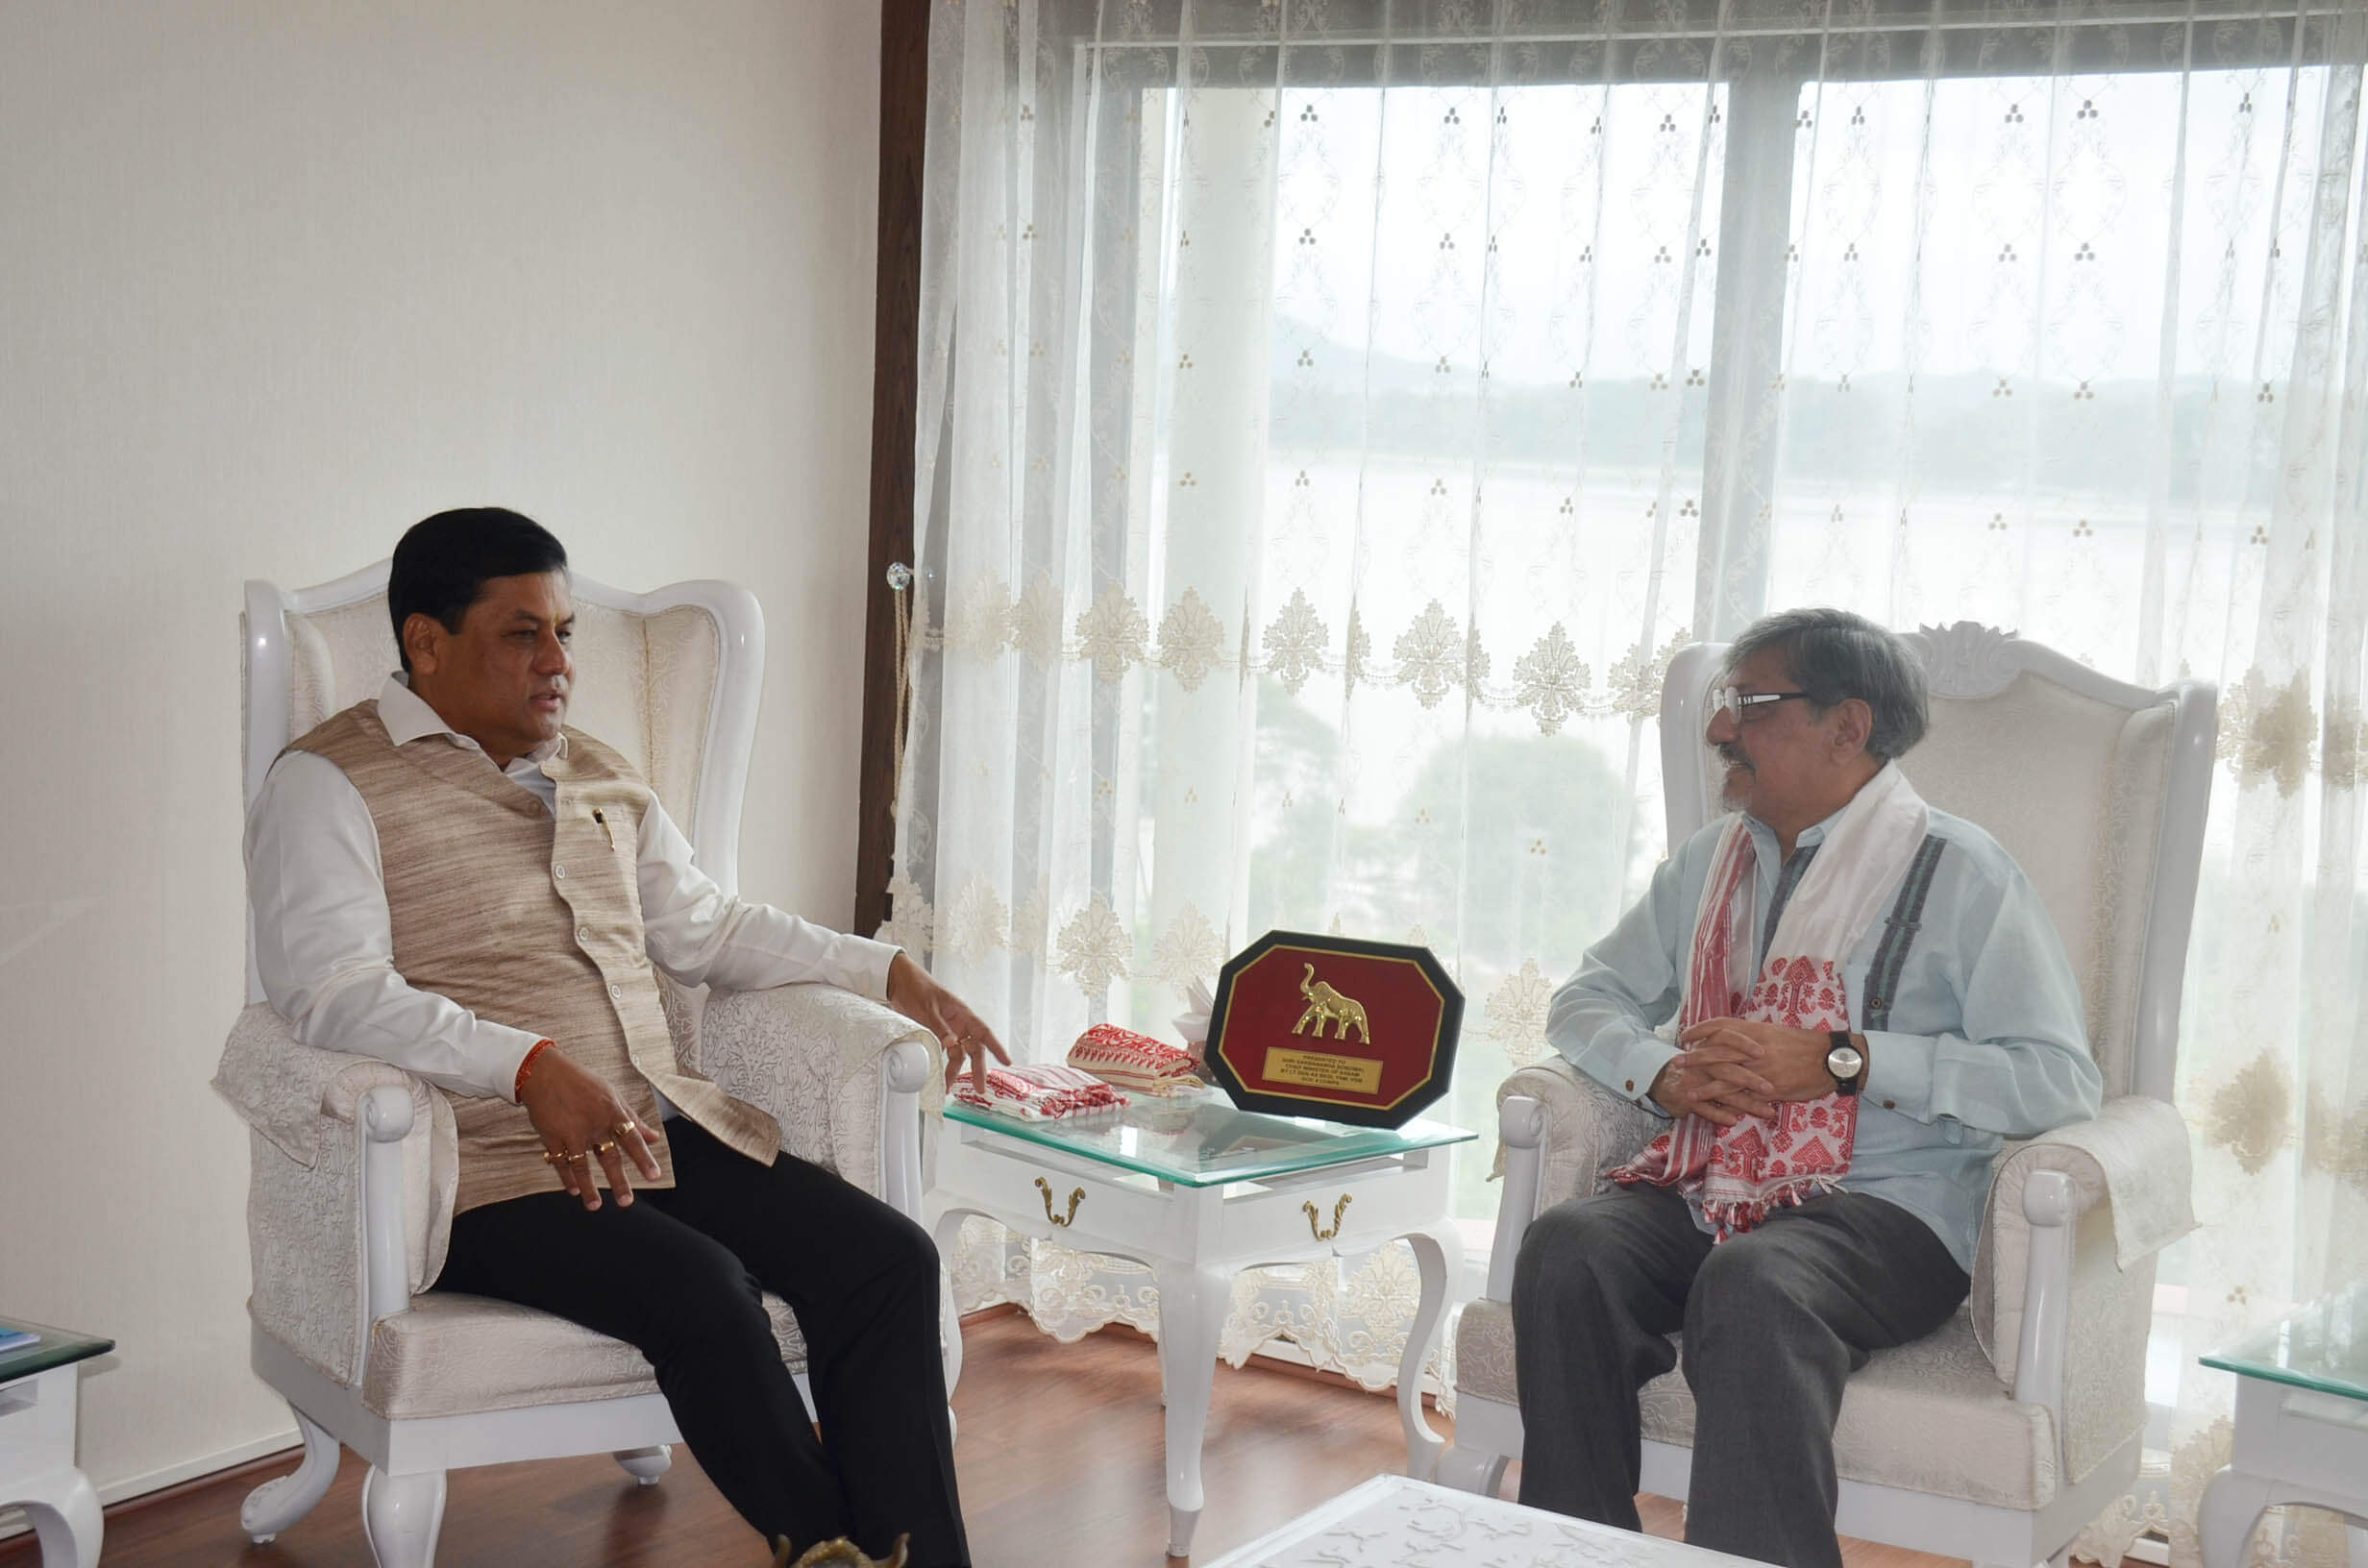 Assam Chief Minister Sarbananda Sonowal discusses Assamese cinema  promotion with Amol Palekar